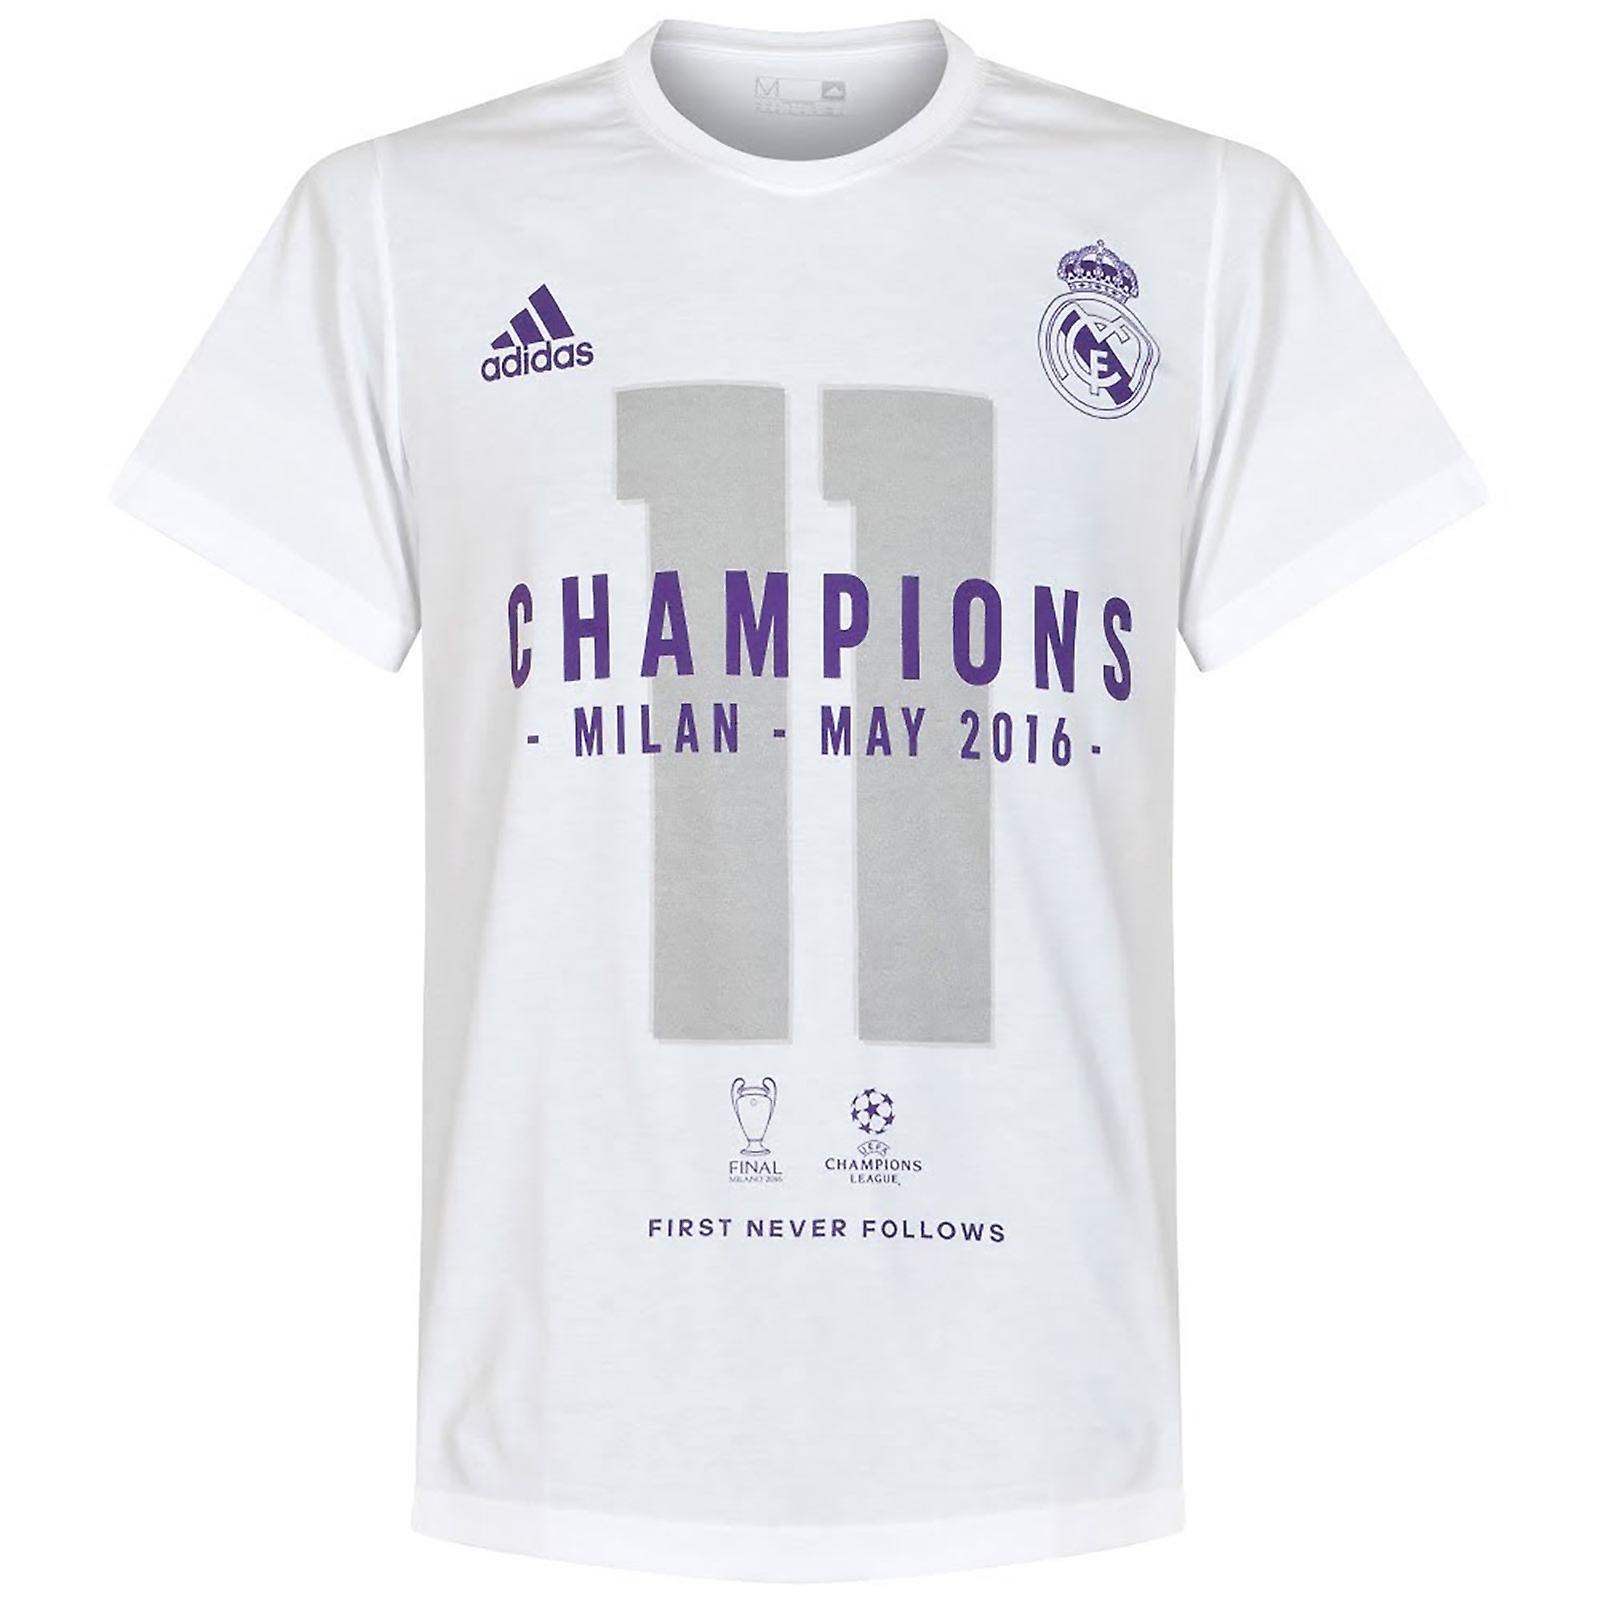 best service 1529a 67ec3 adidas Real Madrid UCL Champions League 2016 Winners Mens Tee / T-shirt